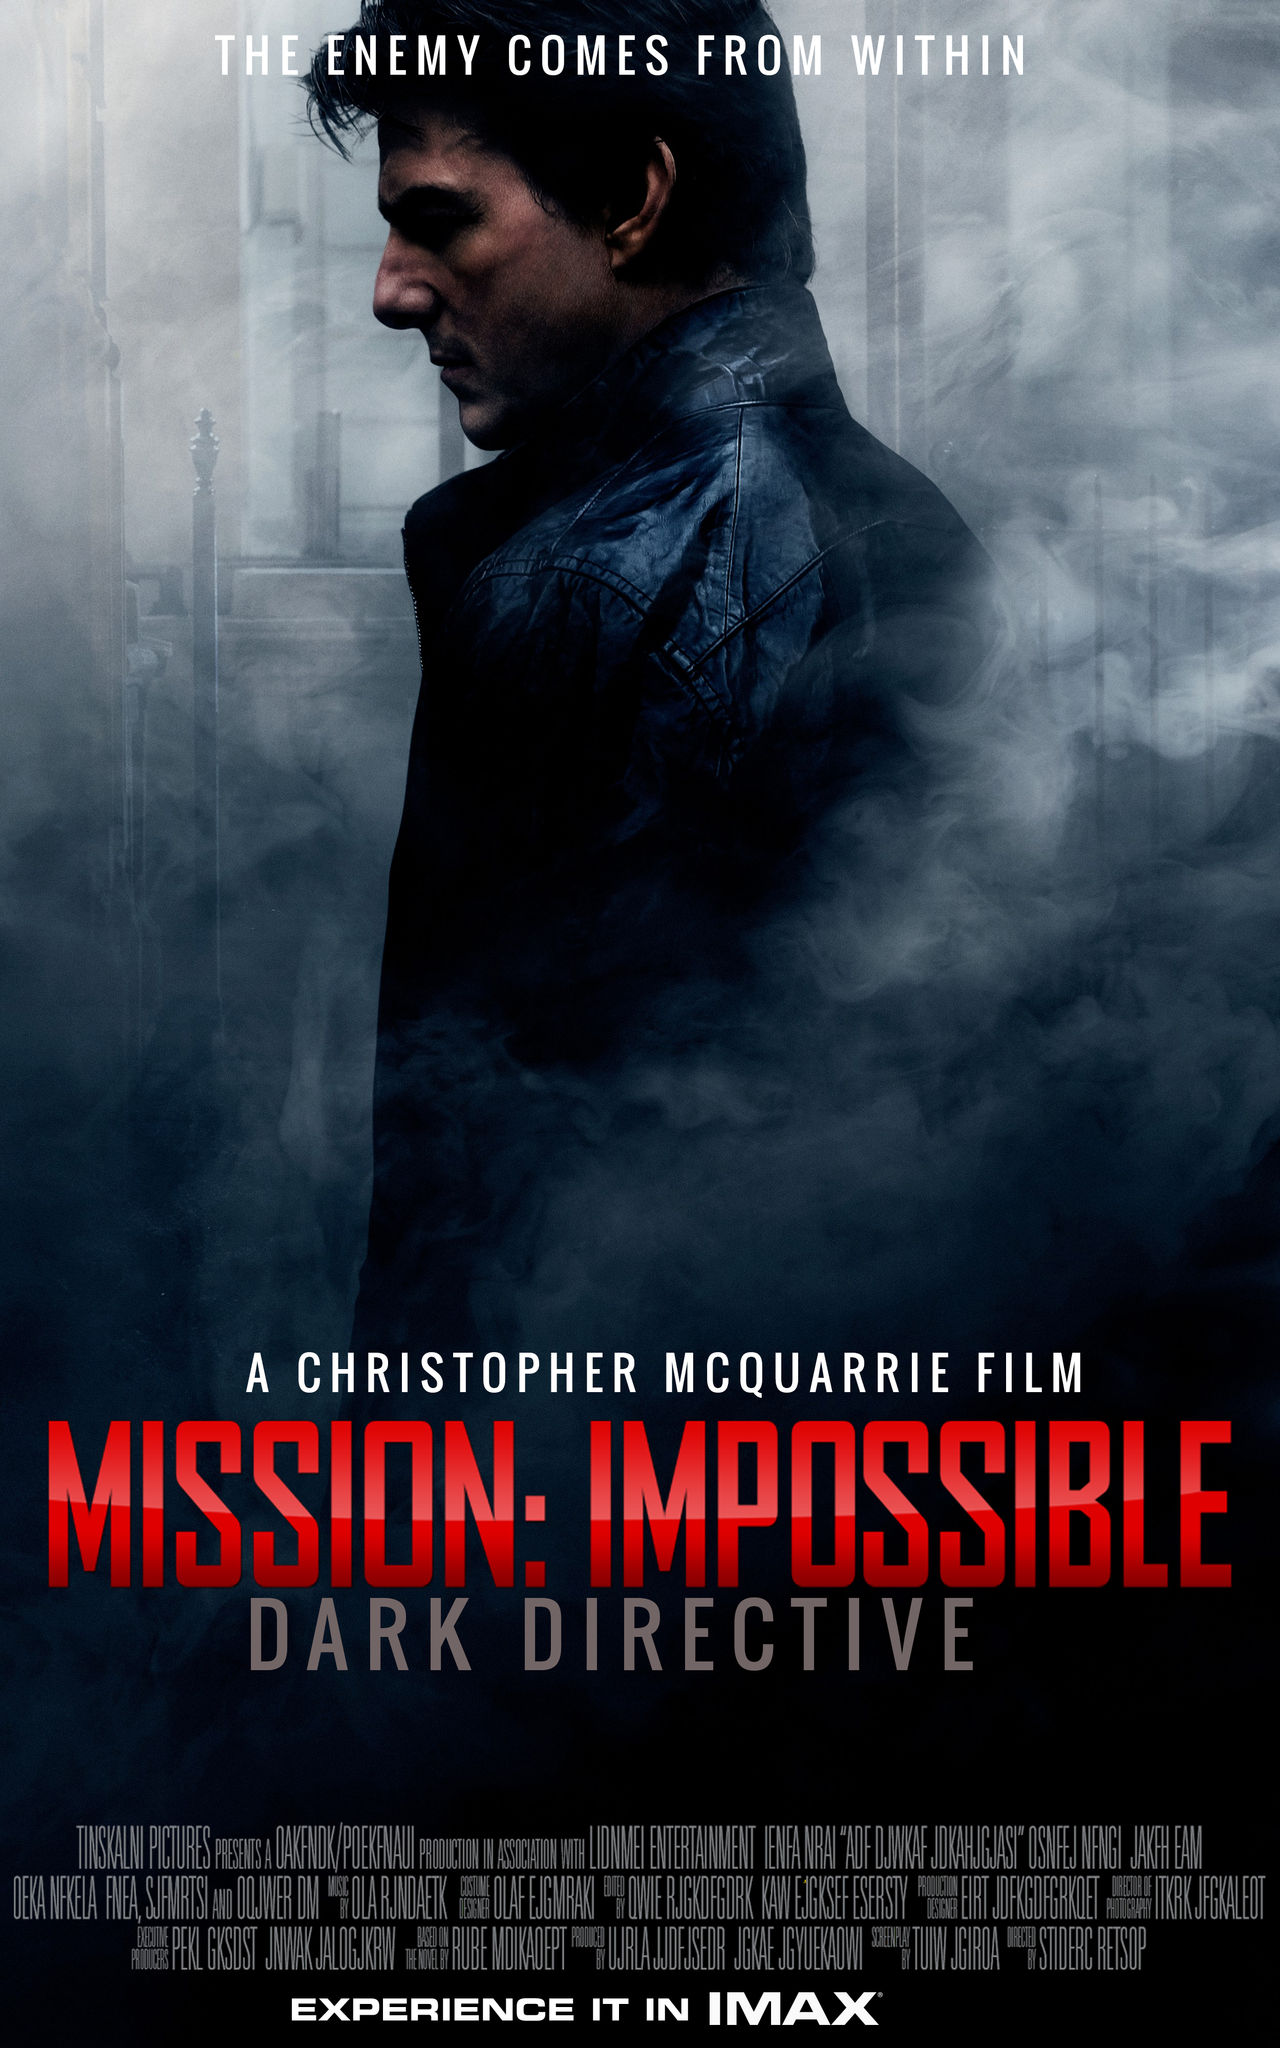 Mission: Impossible 7 Filming of the Movie Resumed